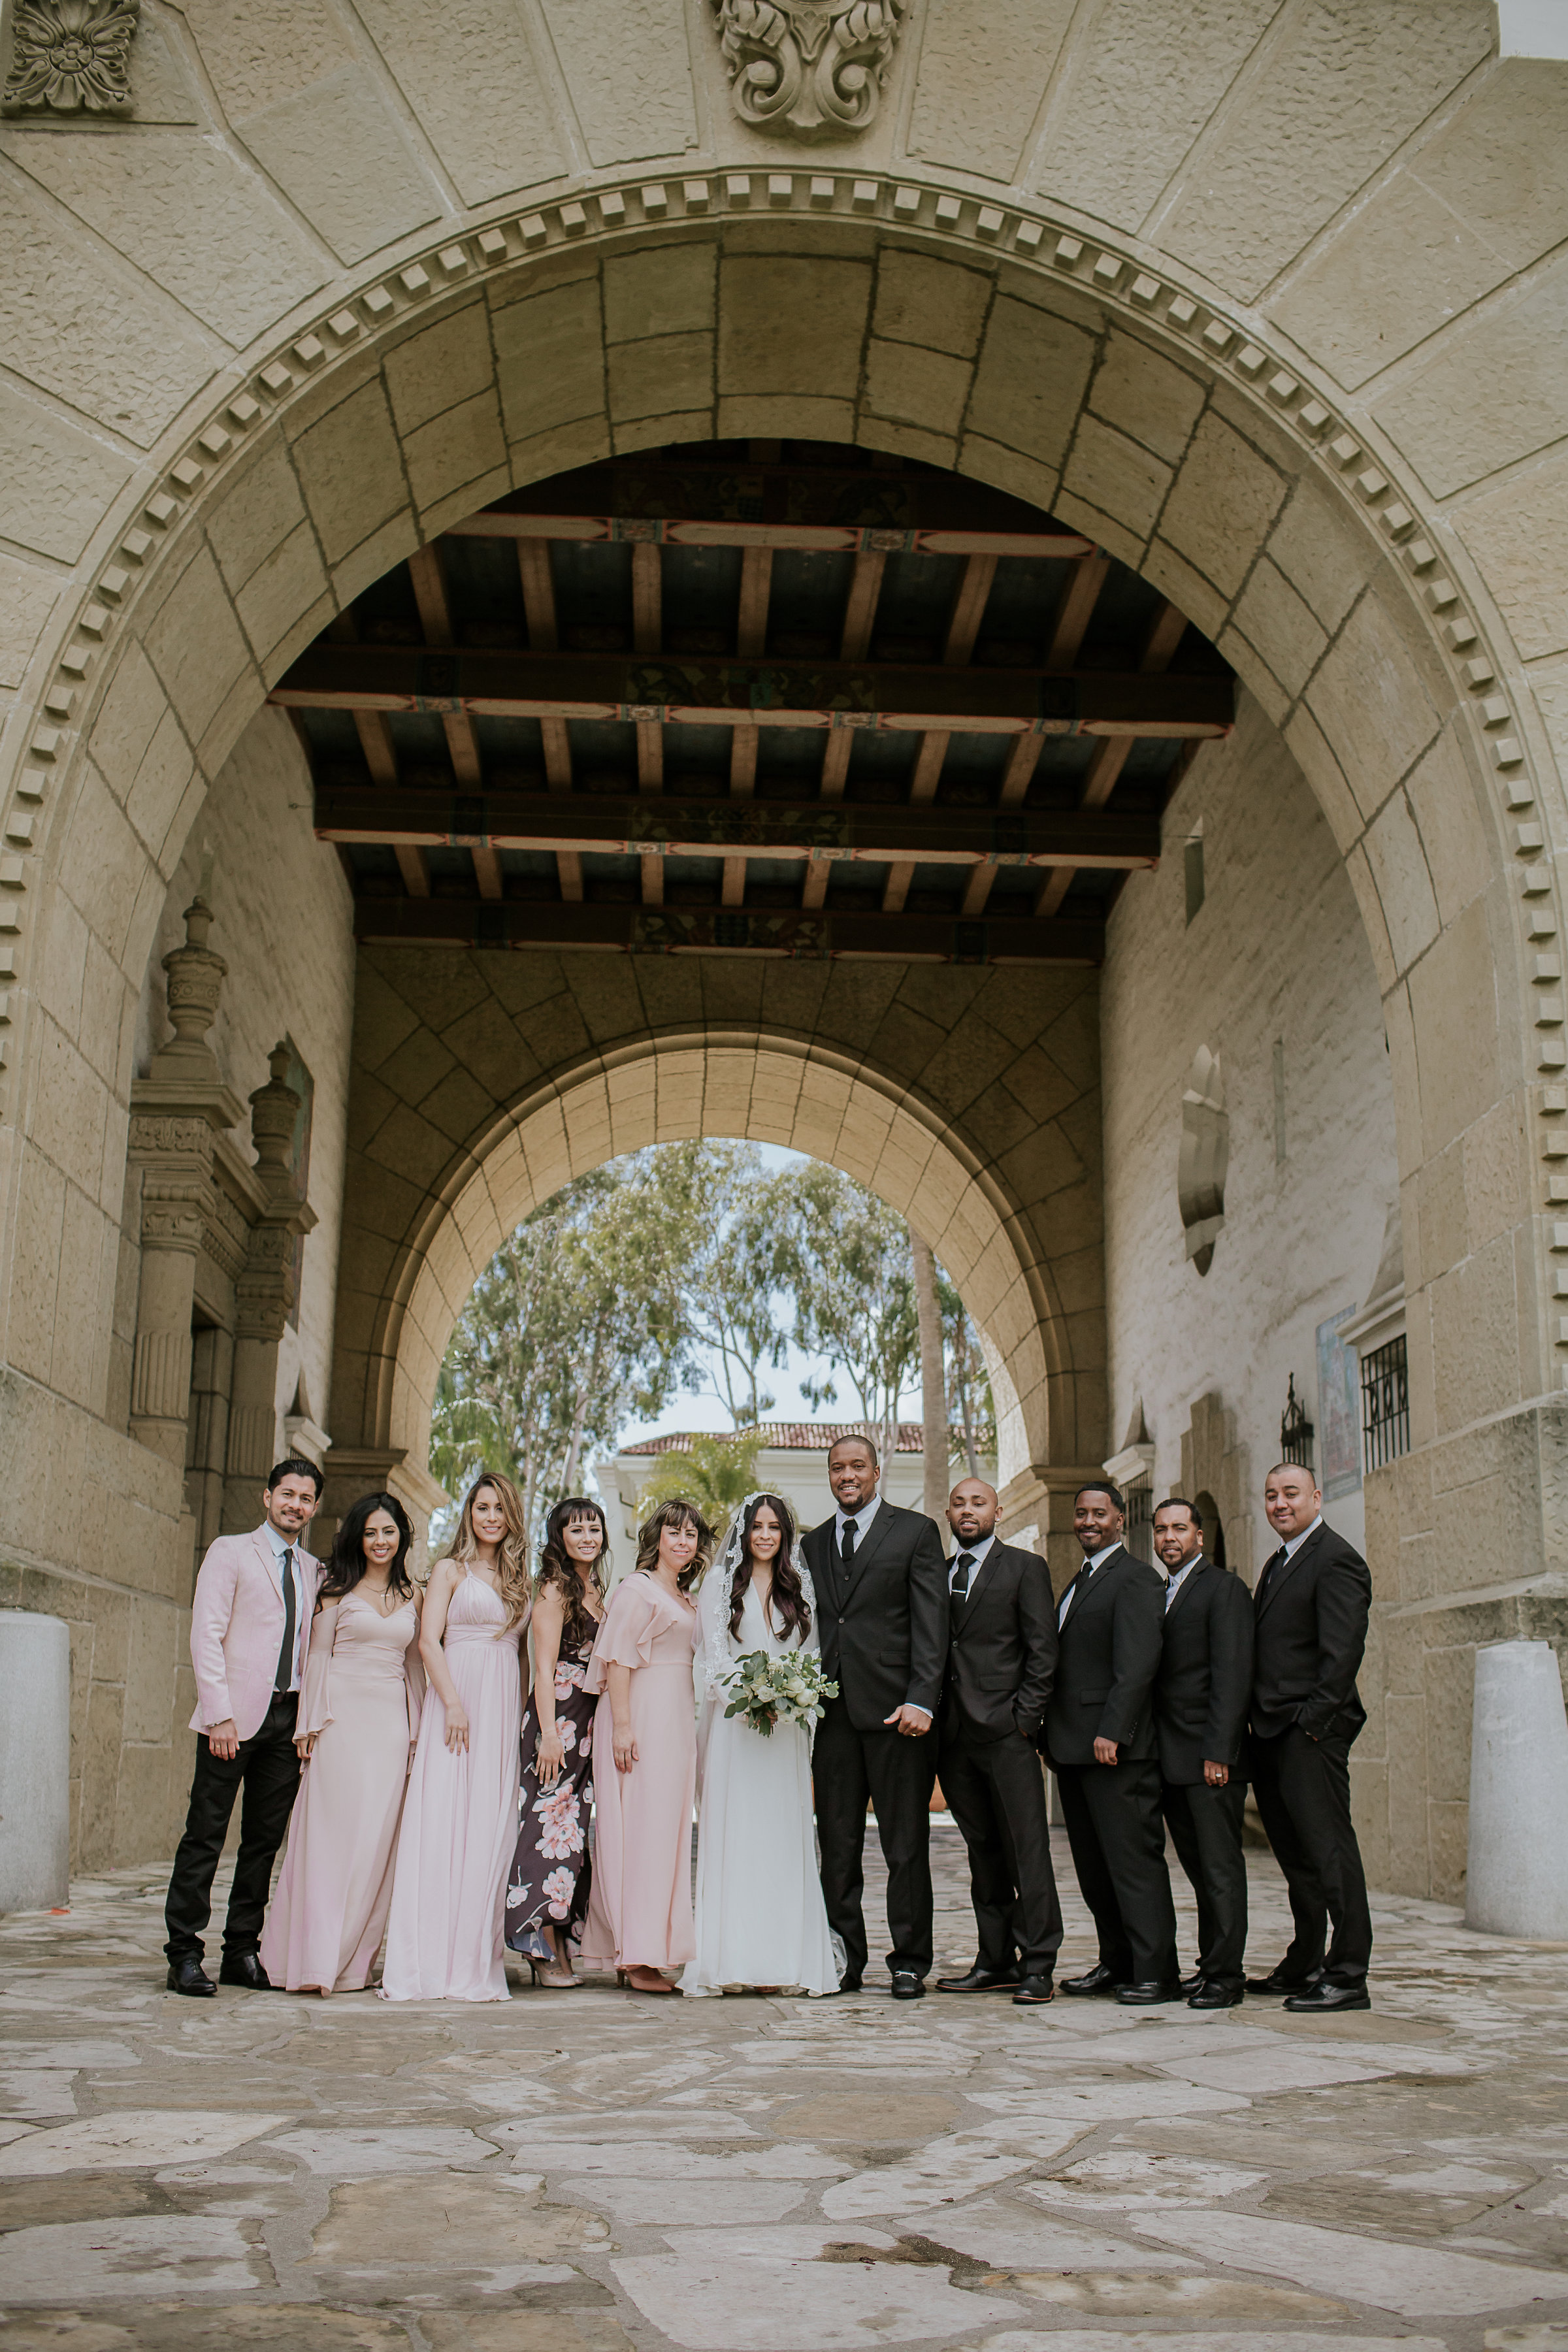 GabrielaandDeJuansantabarbaracourthouseweddingstellamaresweddingelopement-298.jpg